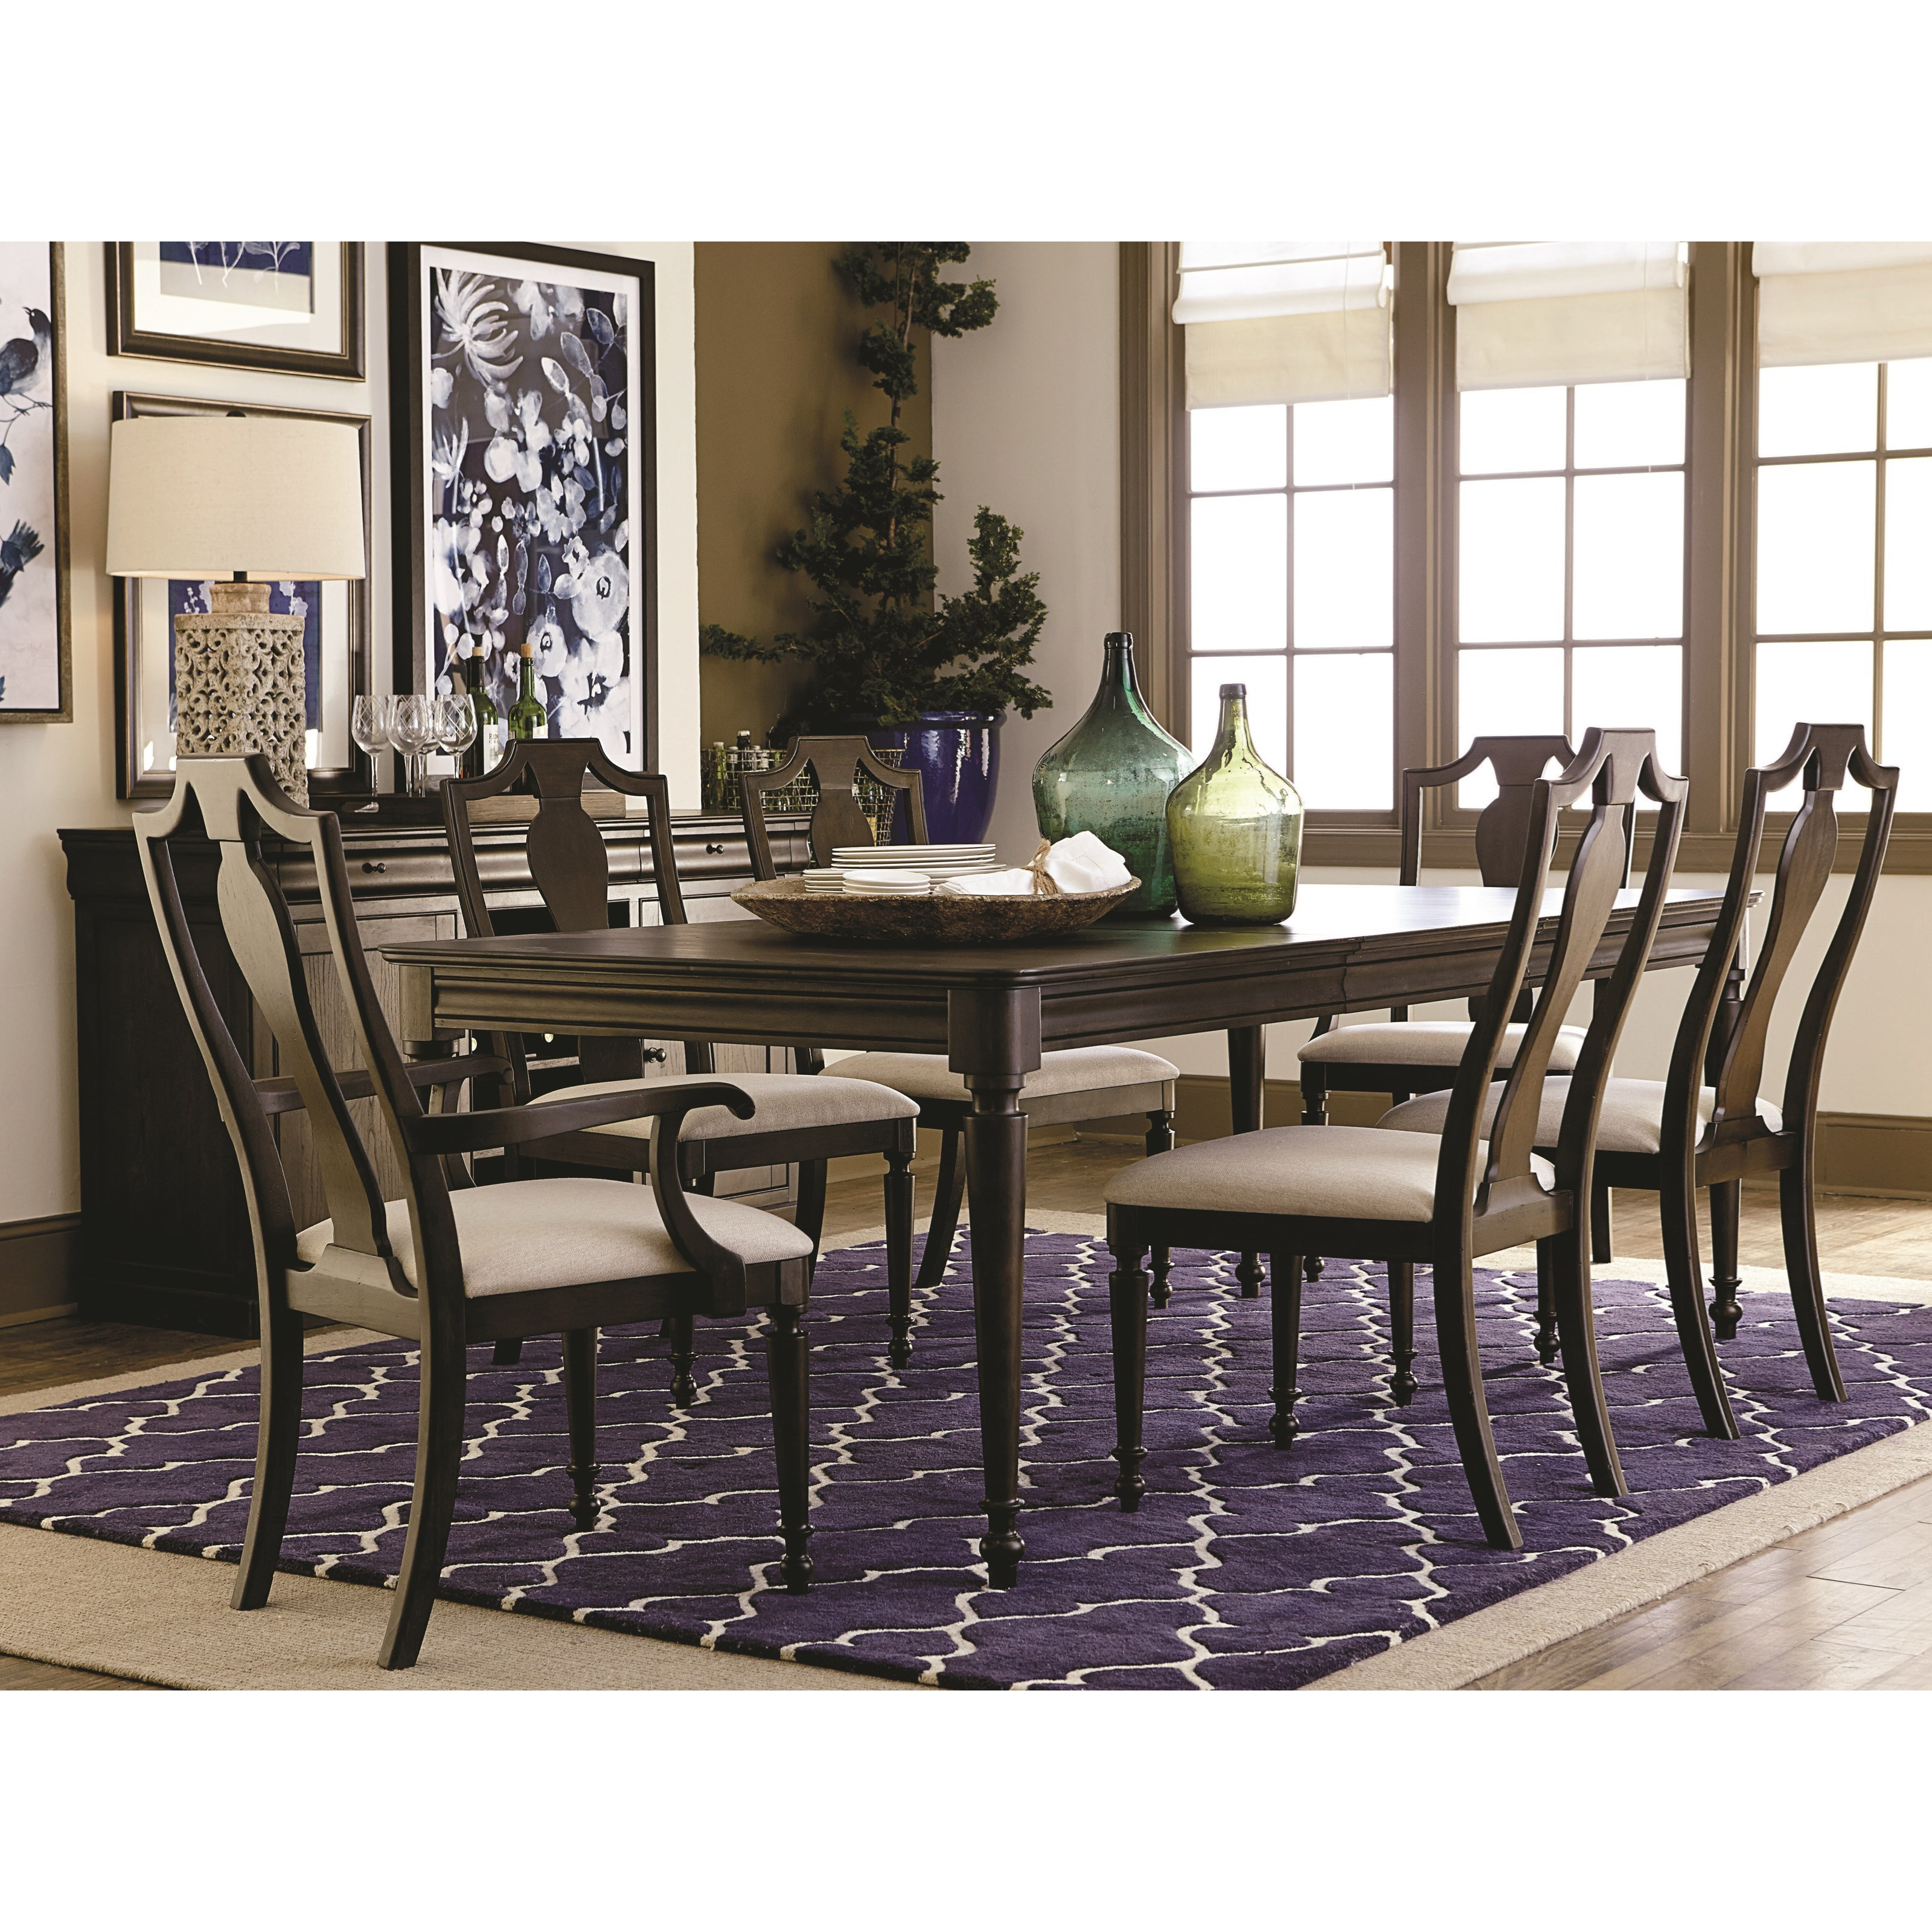 Bassett Dining Room Set: Bassett Provence Formal Dining Table And Chair Set